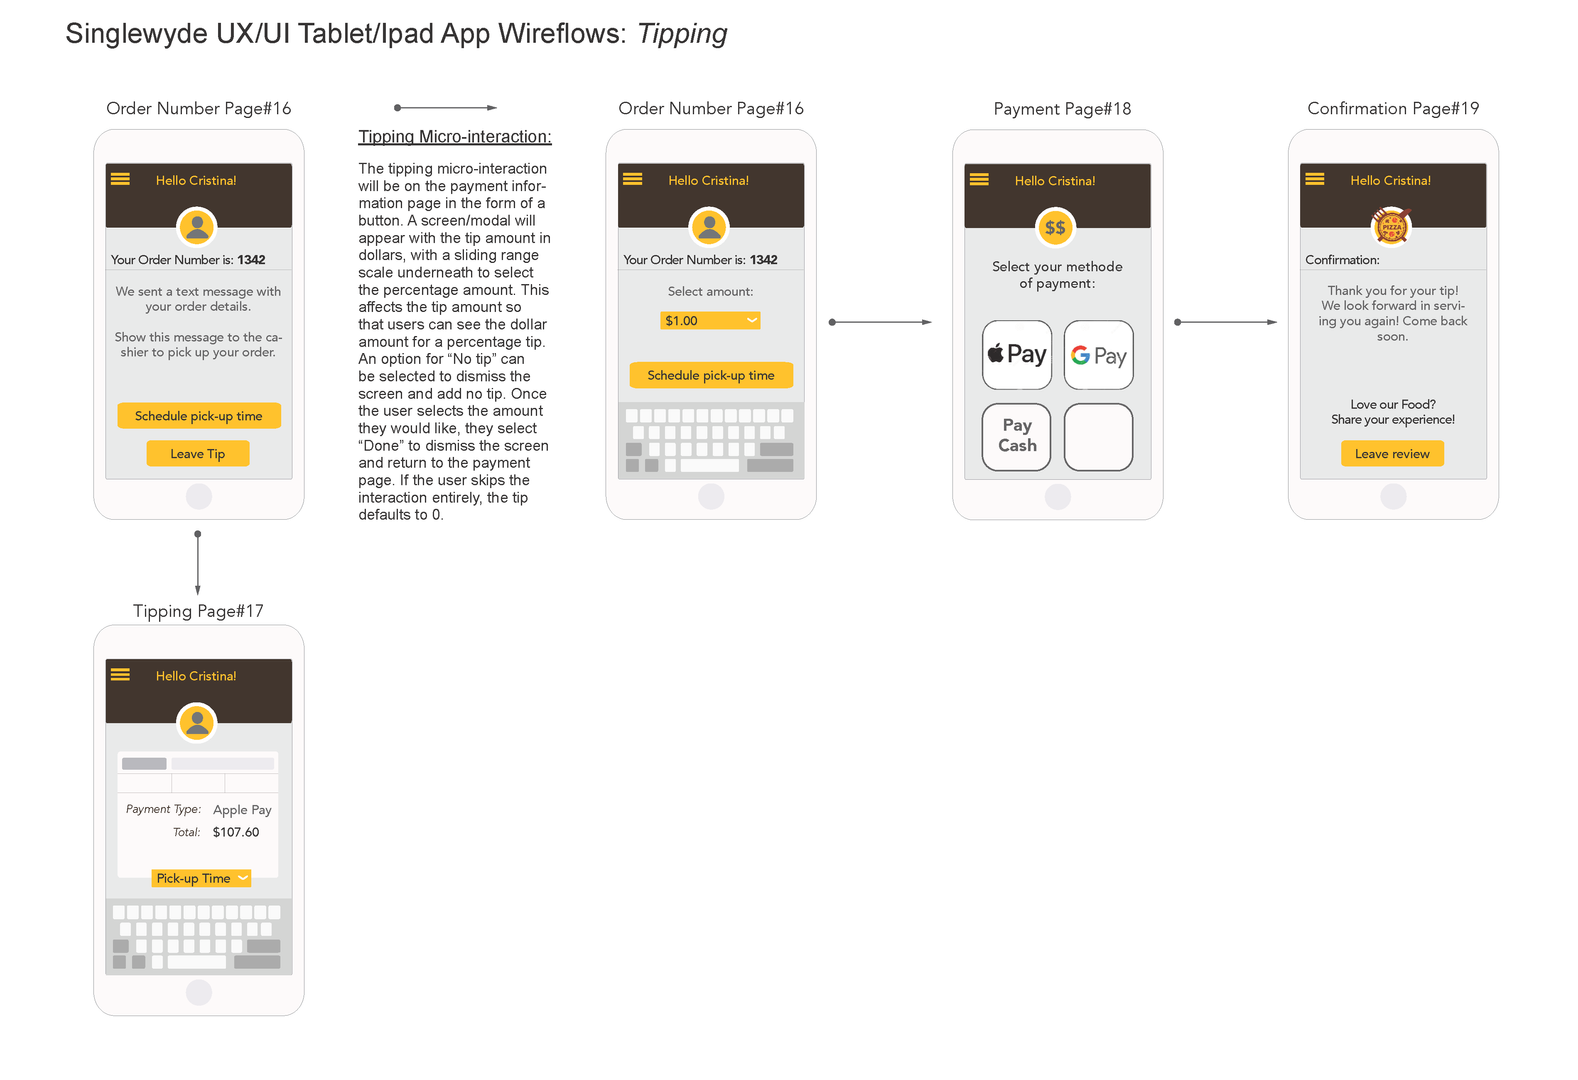 Singlewyde TABLET-IPAD Wireframes for 4